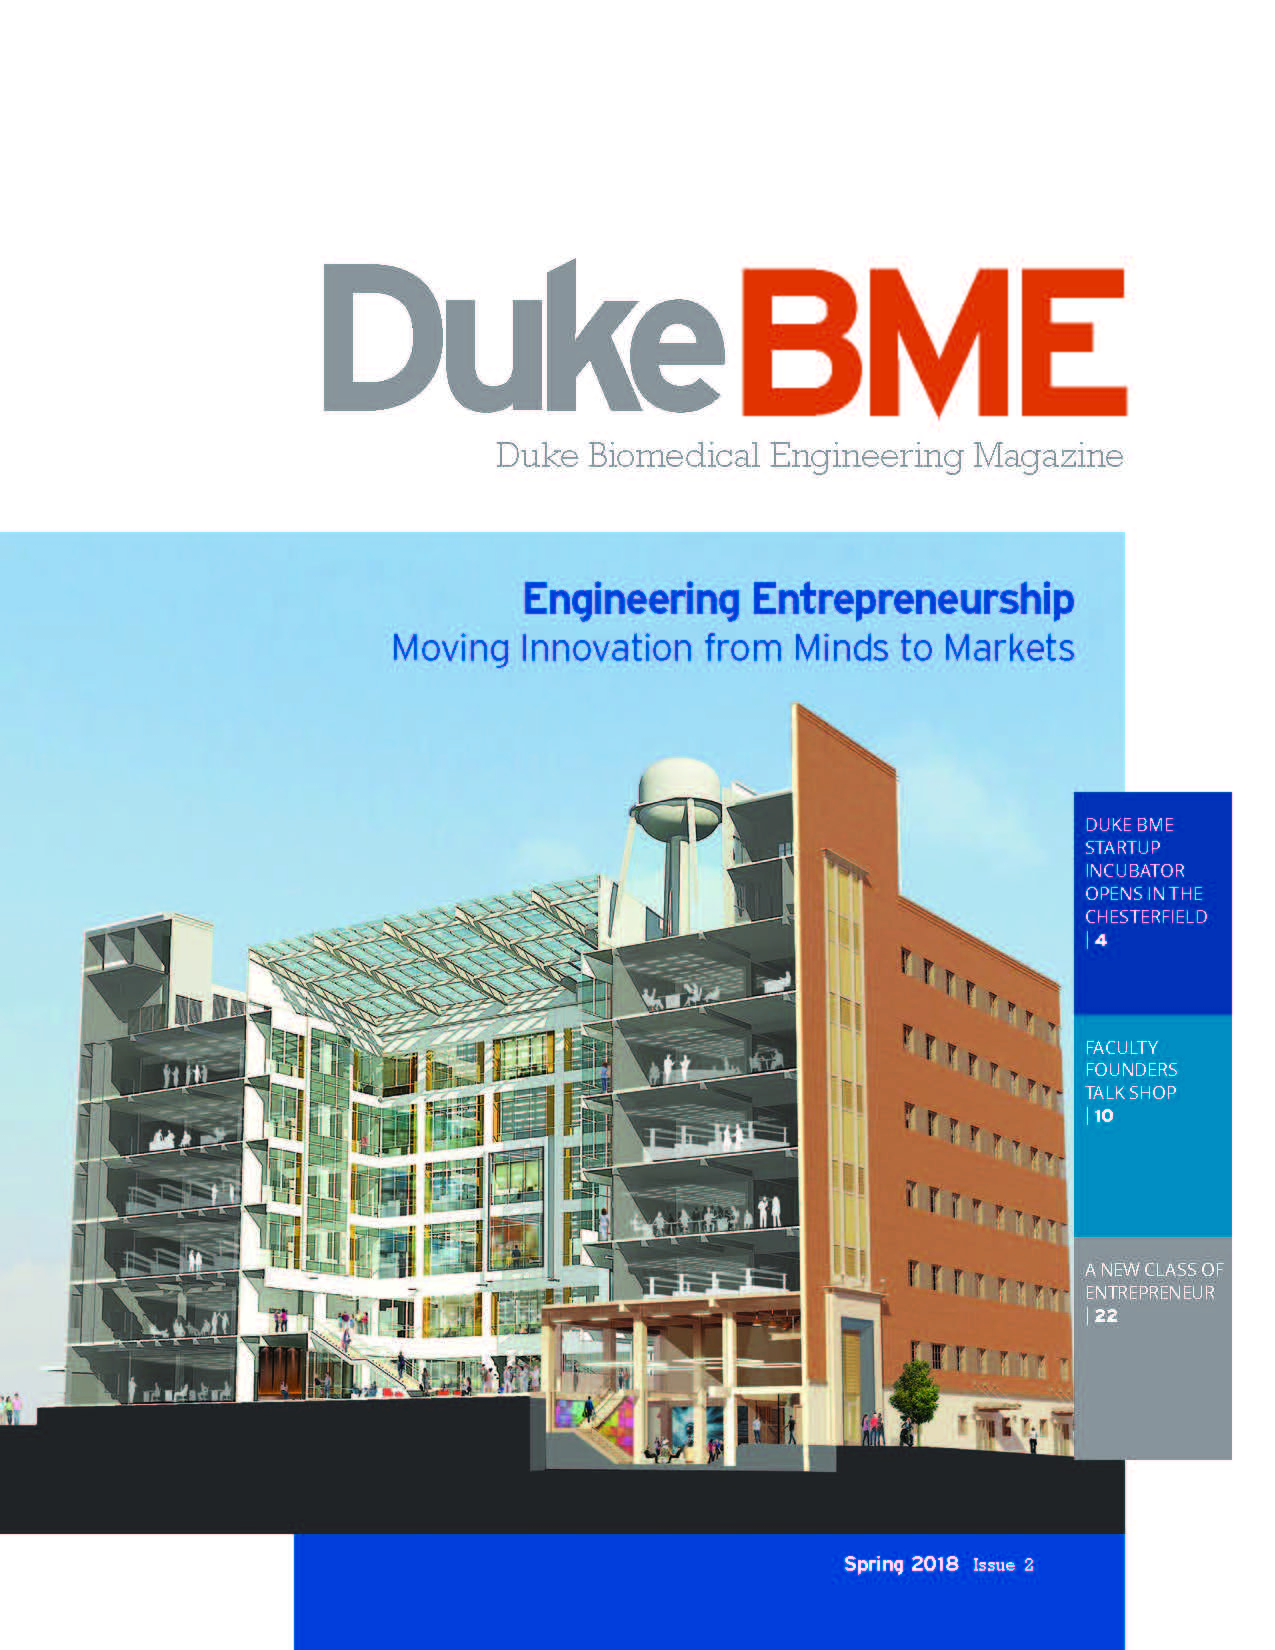 Explore the Spring 2018 issue of Duke BME Magazine